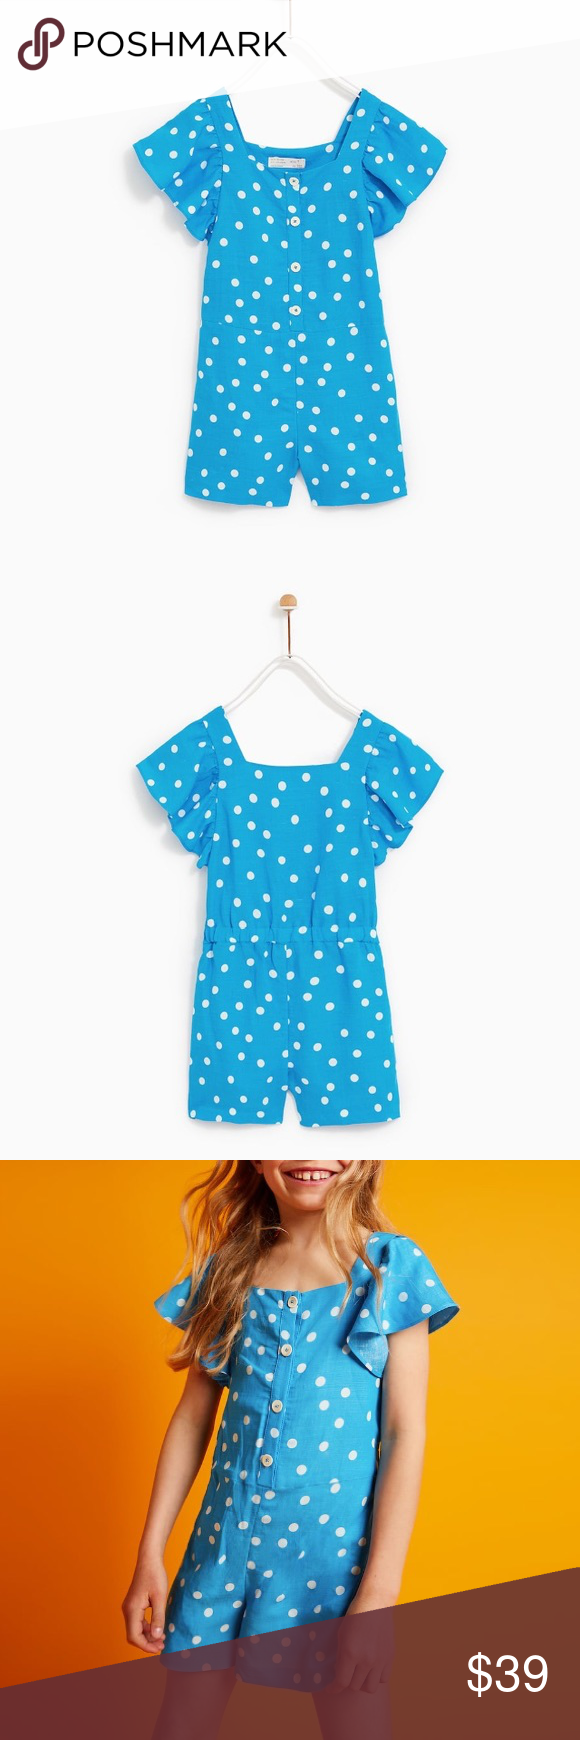 9fd47c8a29 Zara girls polka dot jumpsuit Love pretty colors with polka dots... playful  look.... size 11 12 Zara Bottoms Jumpsuits   Rompers